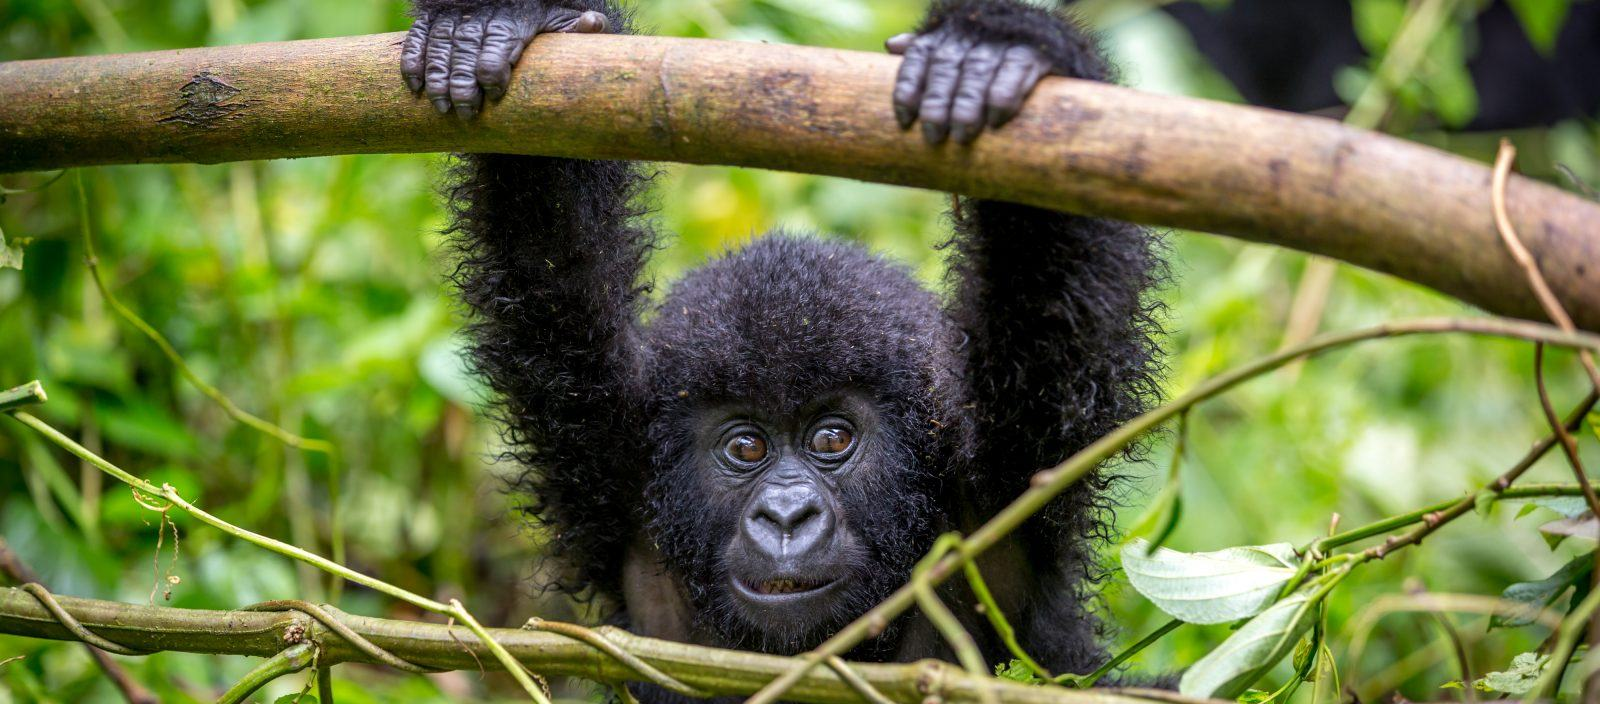 The Great Apes of Uganda and Rwanda